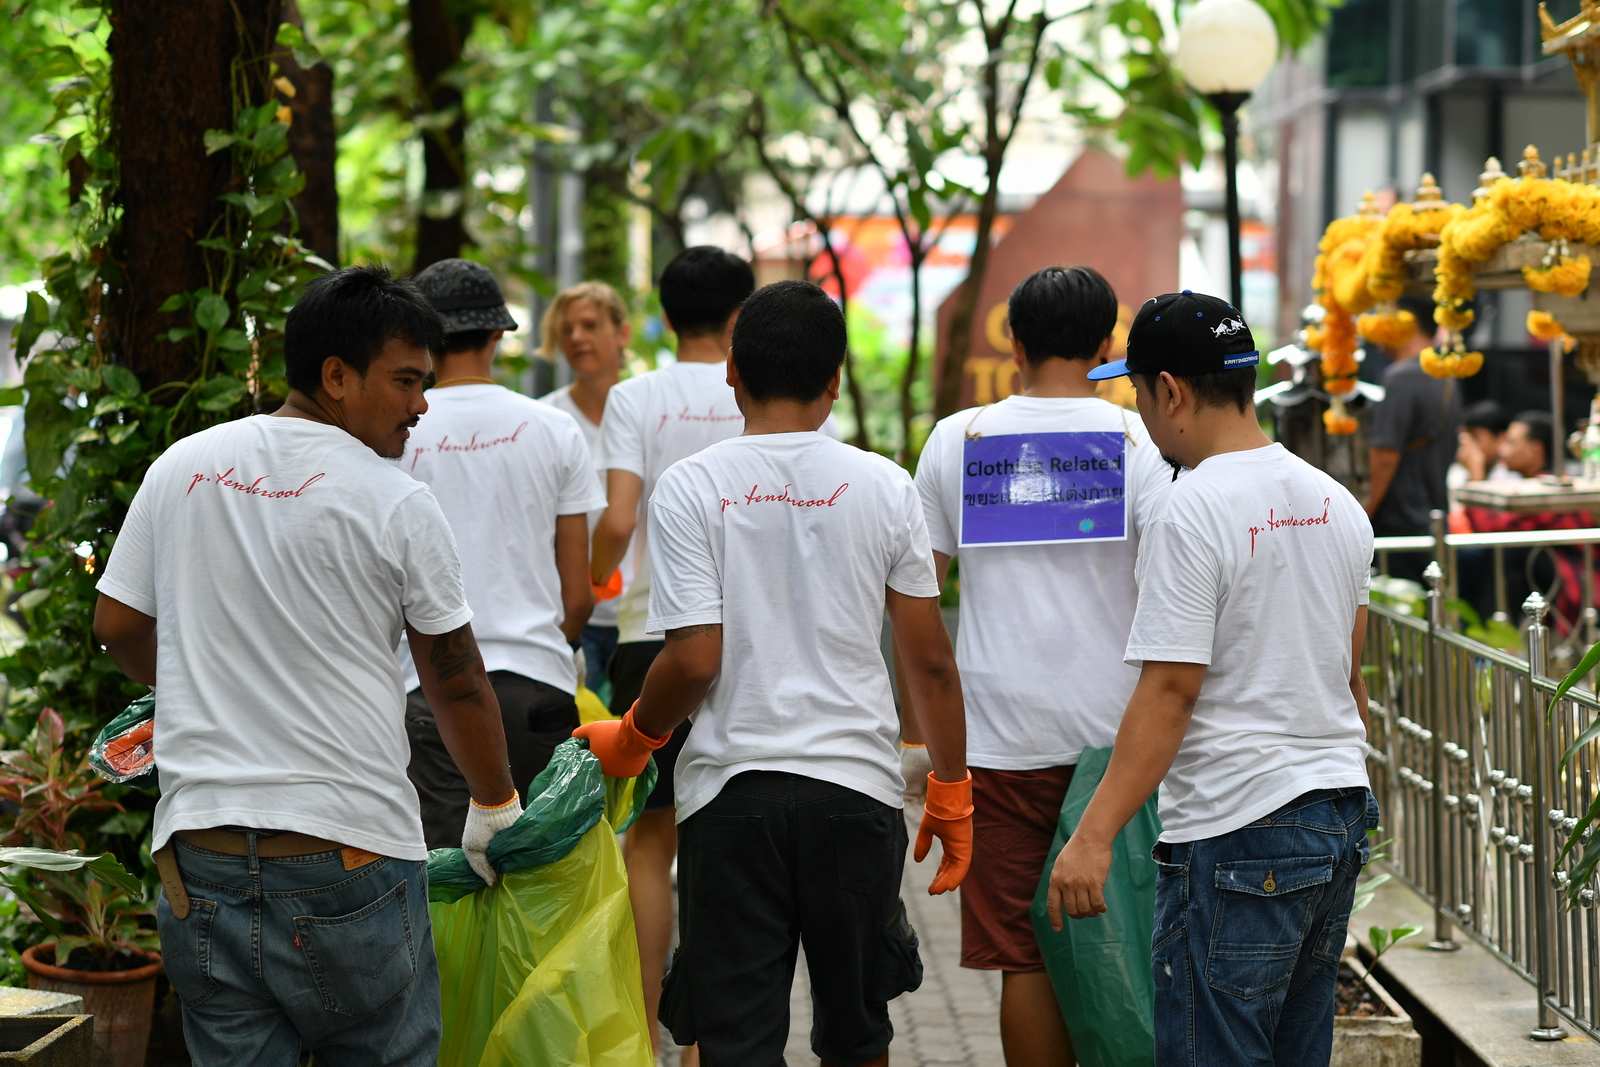 PTendercool-Event-Clean Up The World-190921-091